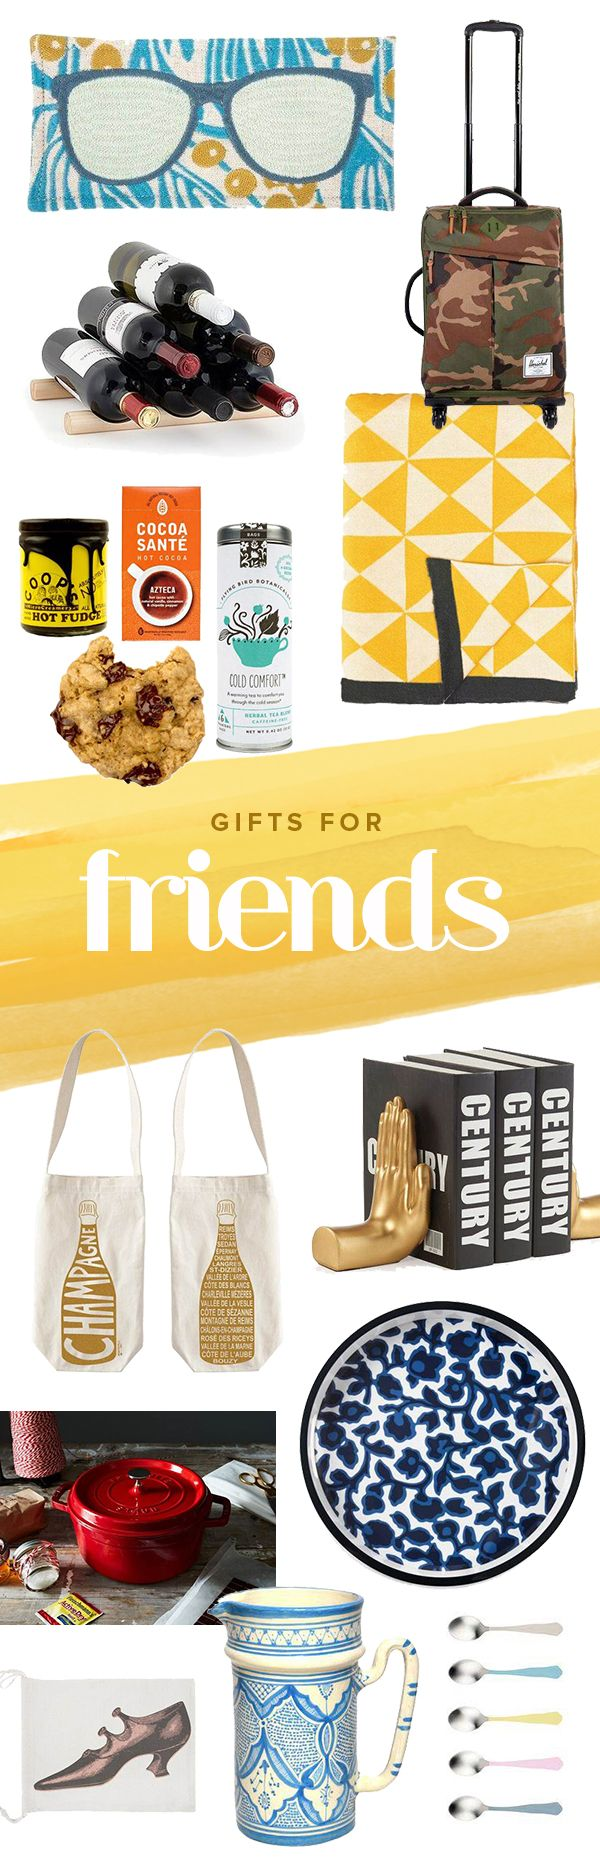 Elegant Gift Ideas for Rich People